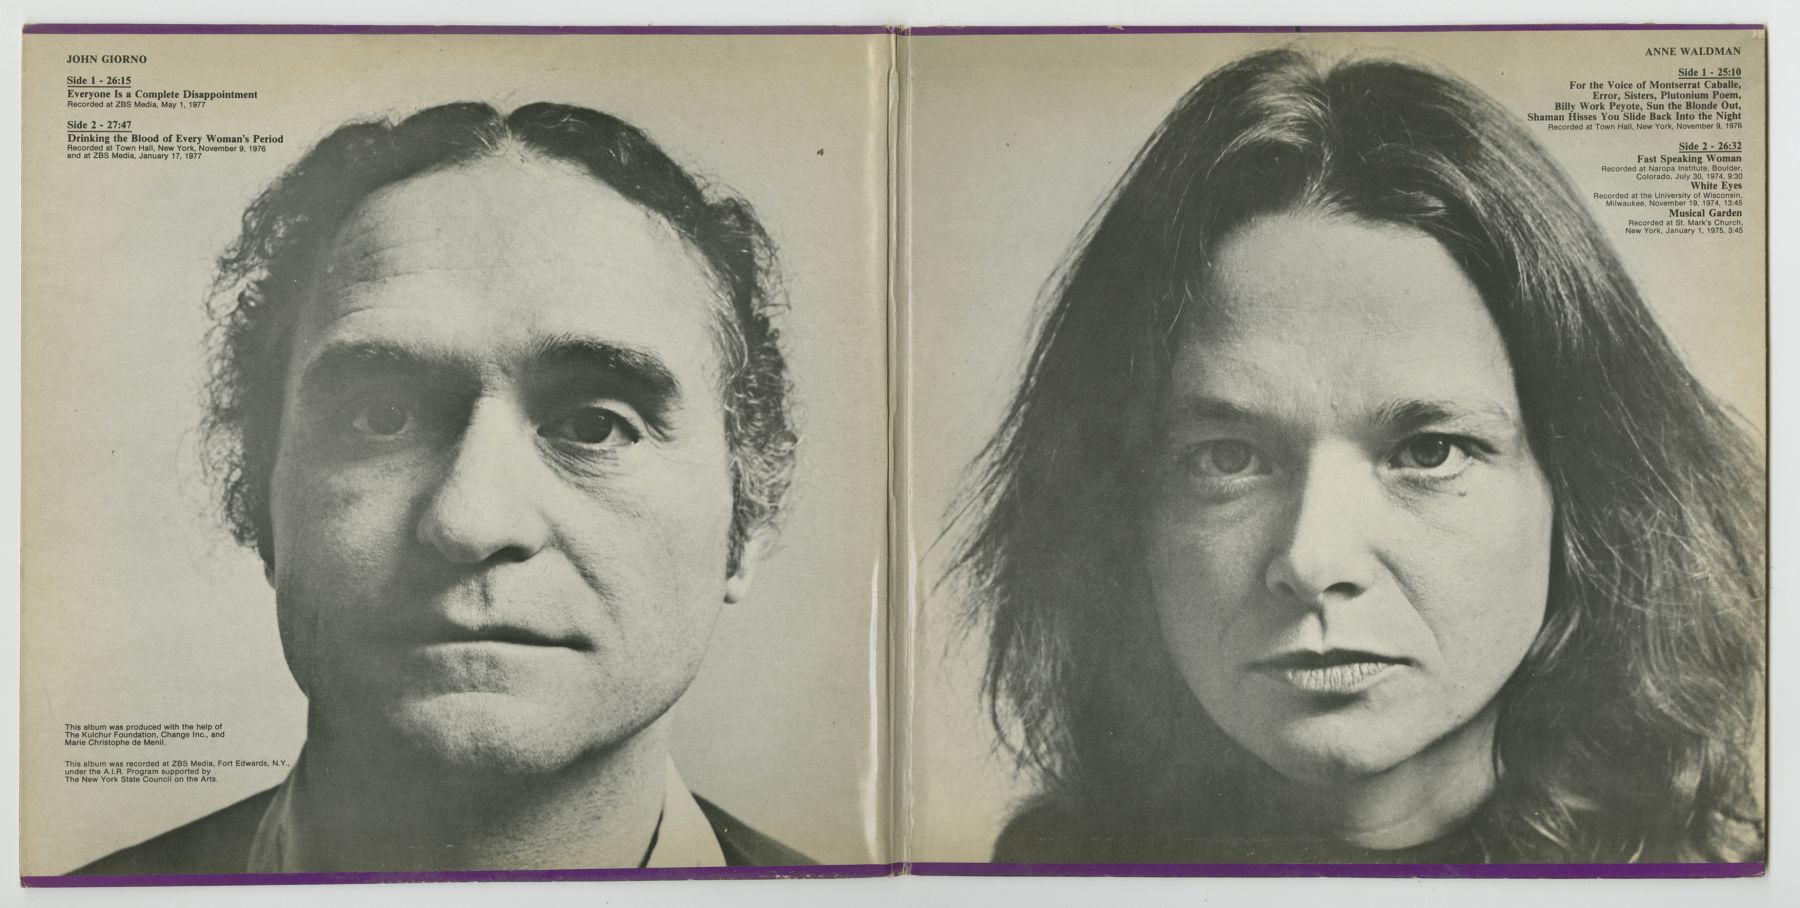 John Giorno and Anne Waldman: A Kulchur Selection (1977), inside spread